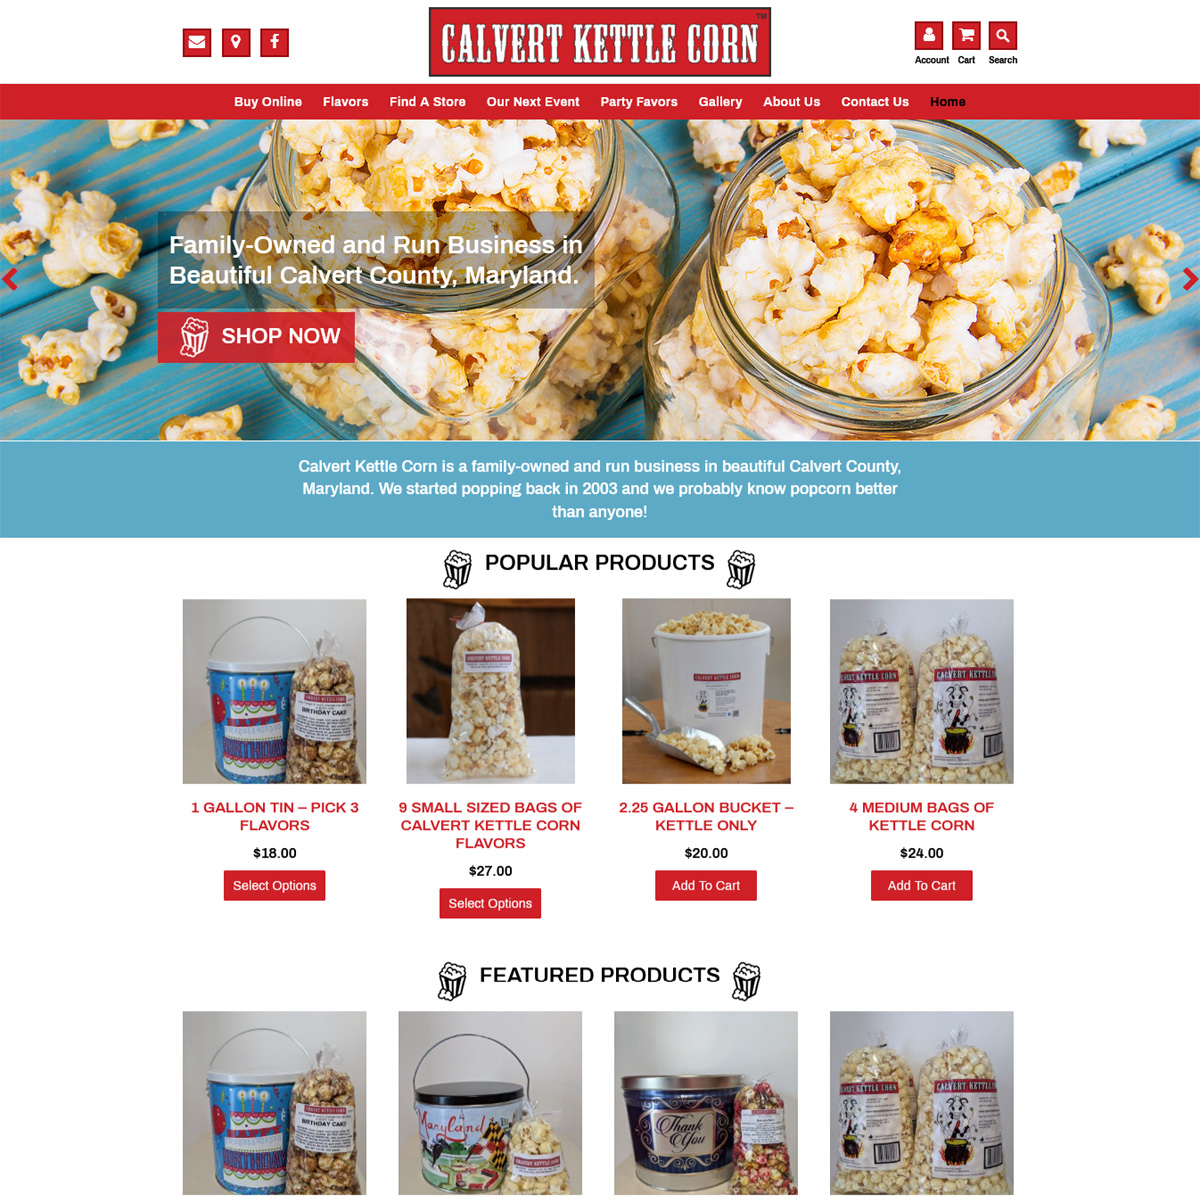 Calvert Kettle Corn Website Design